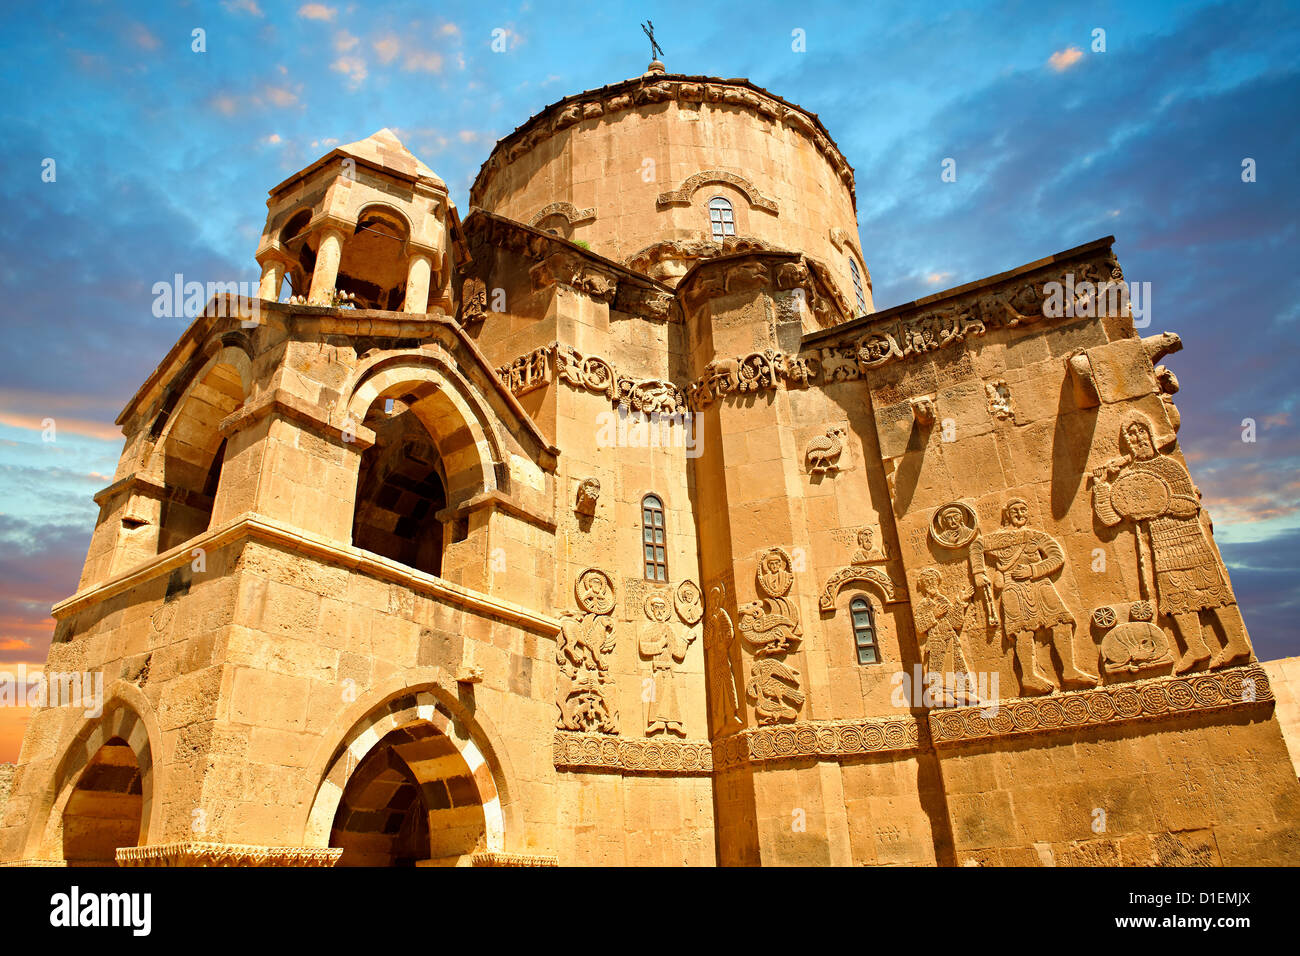 10th century Armenian Orthodox Cathedral of the Holy Cross on Akdamar Island, Lake Van Turkey - Stock Image